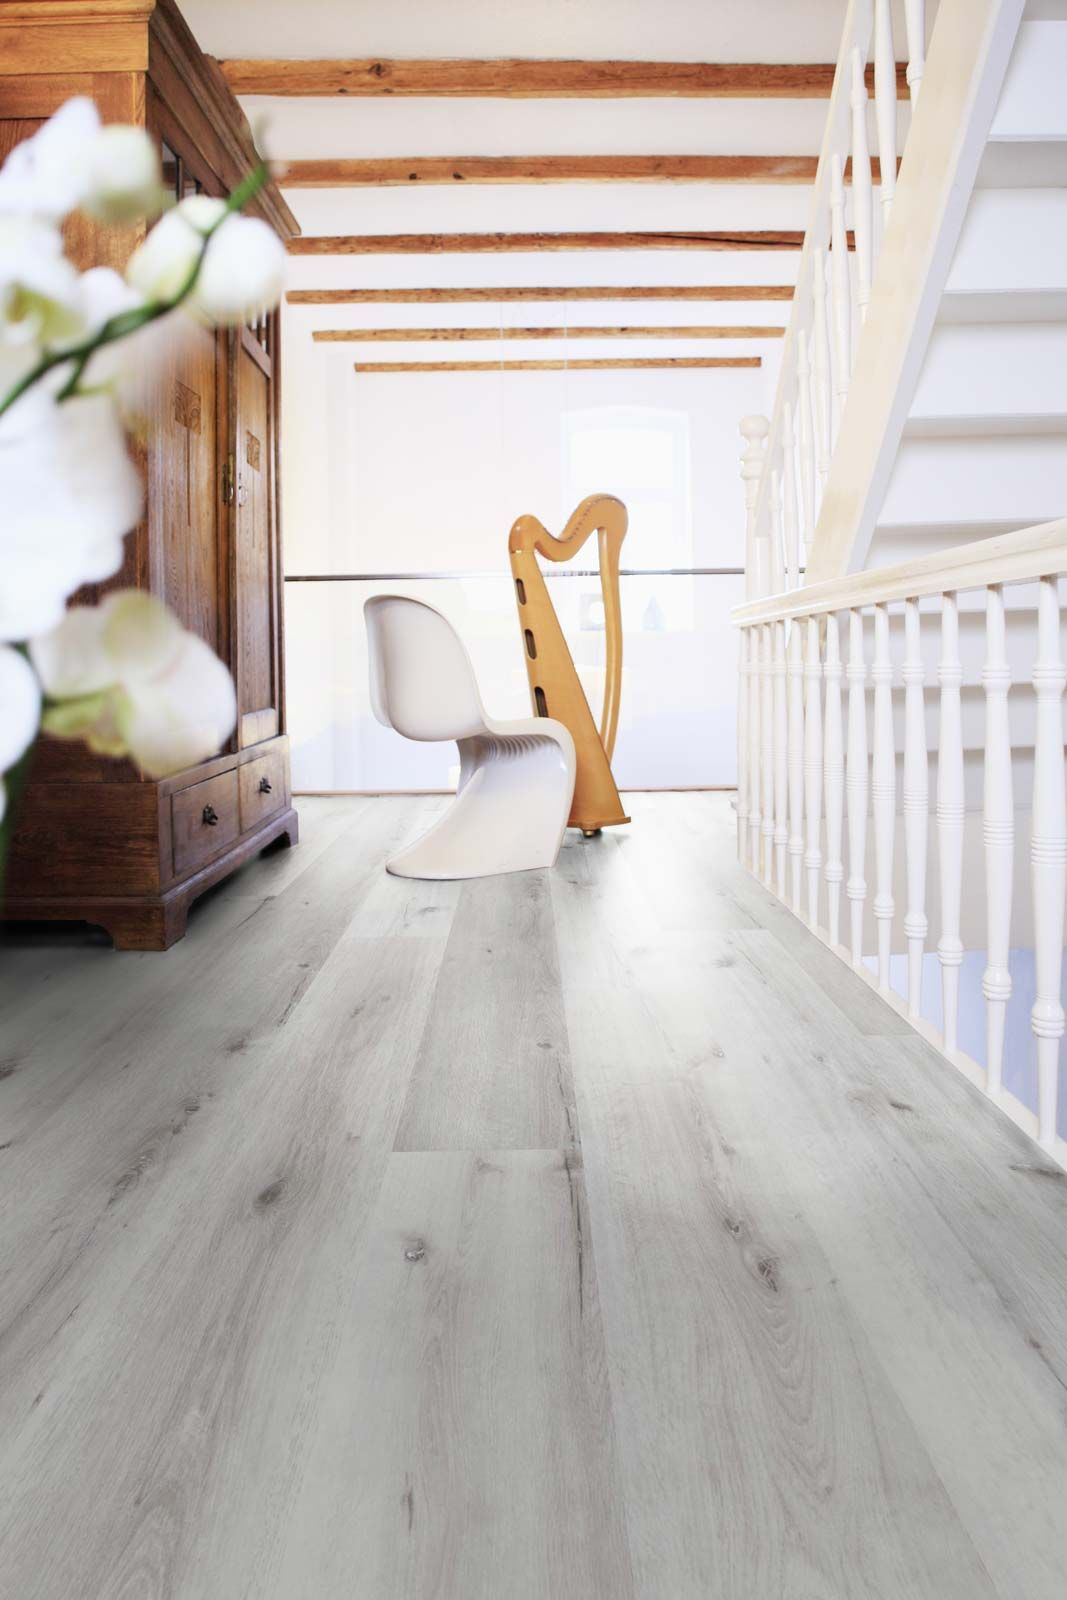 Lame Pvc Clipsable Imitation Parquet Blanc Wineo 800